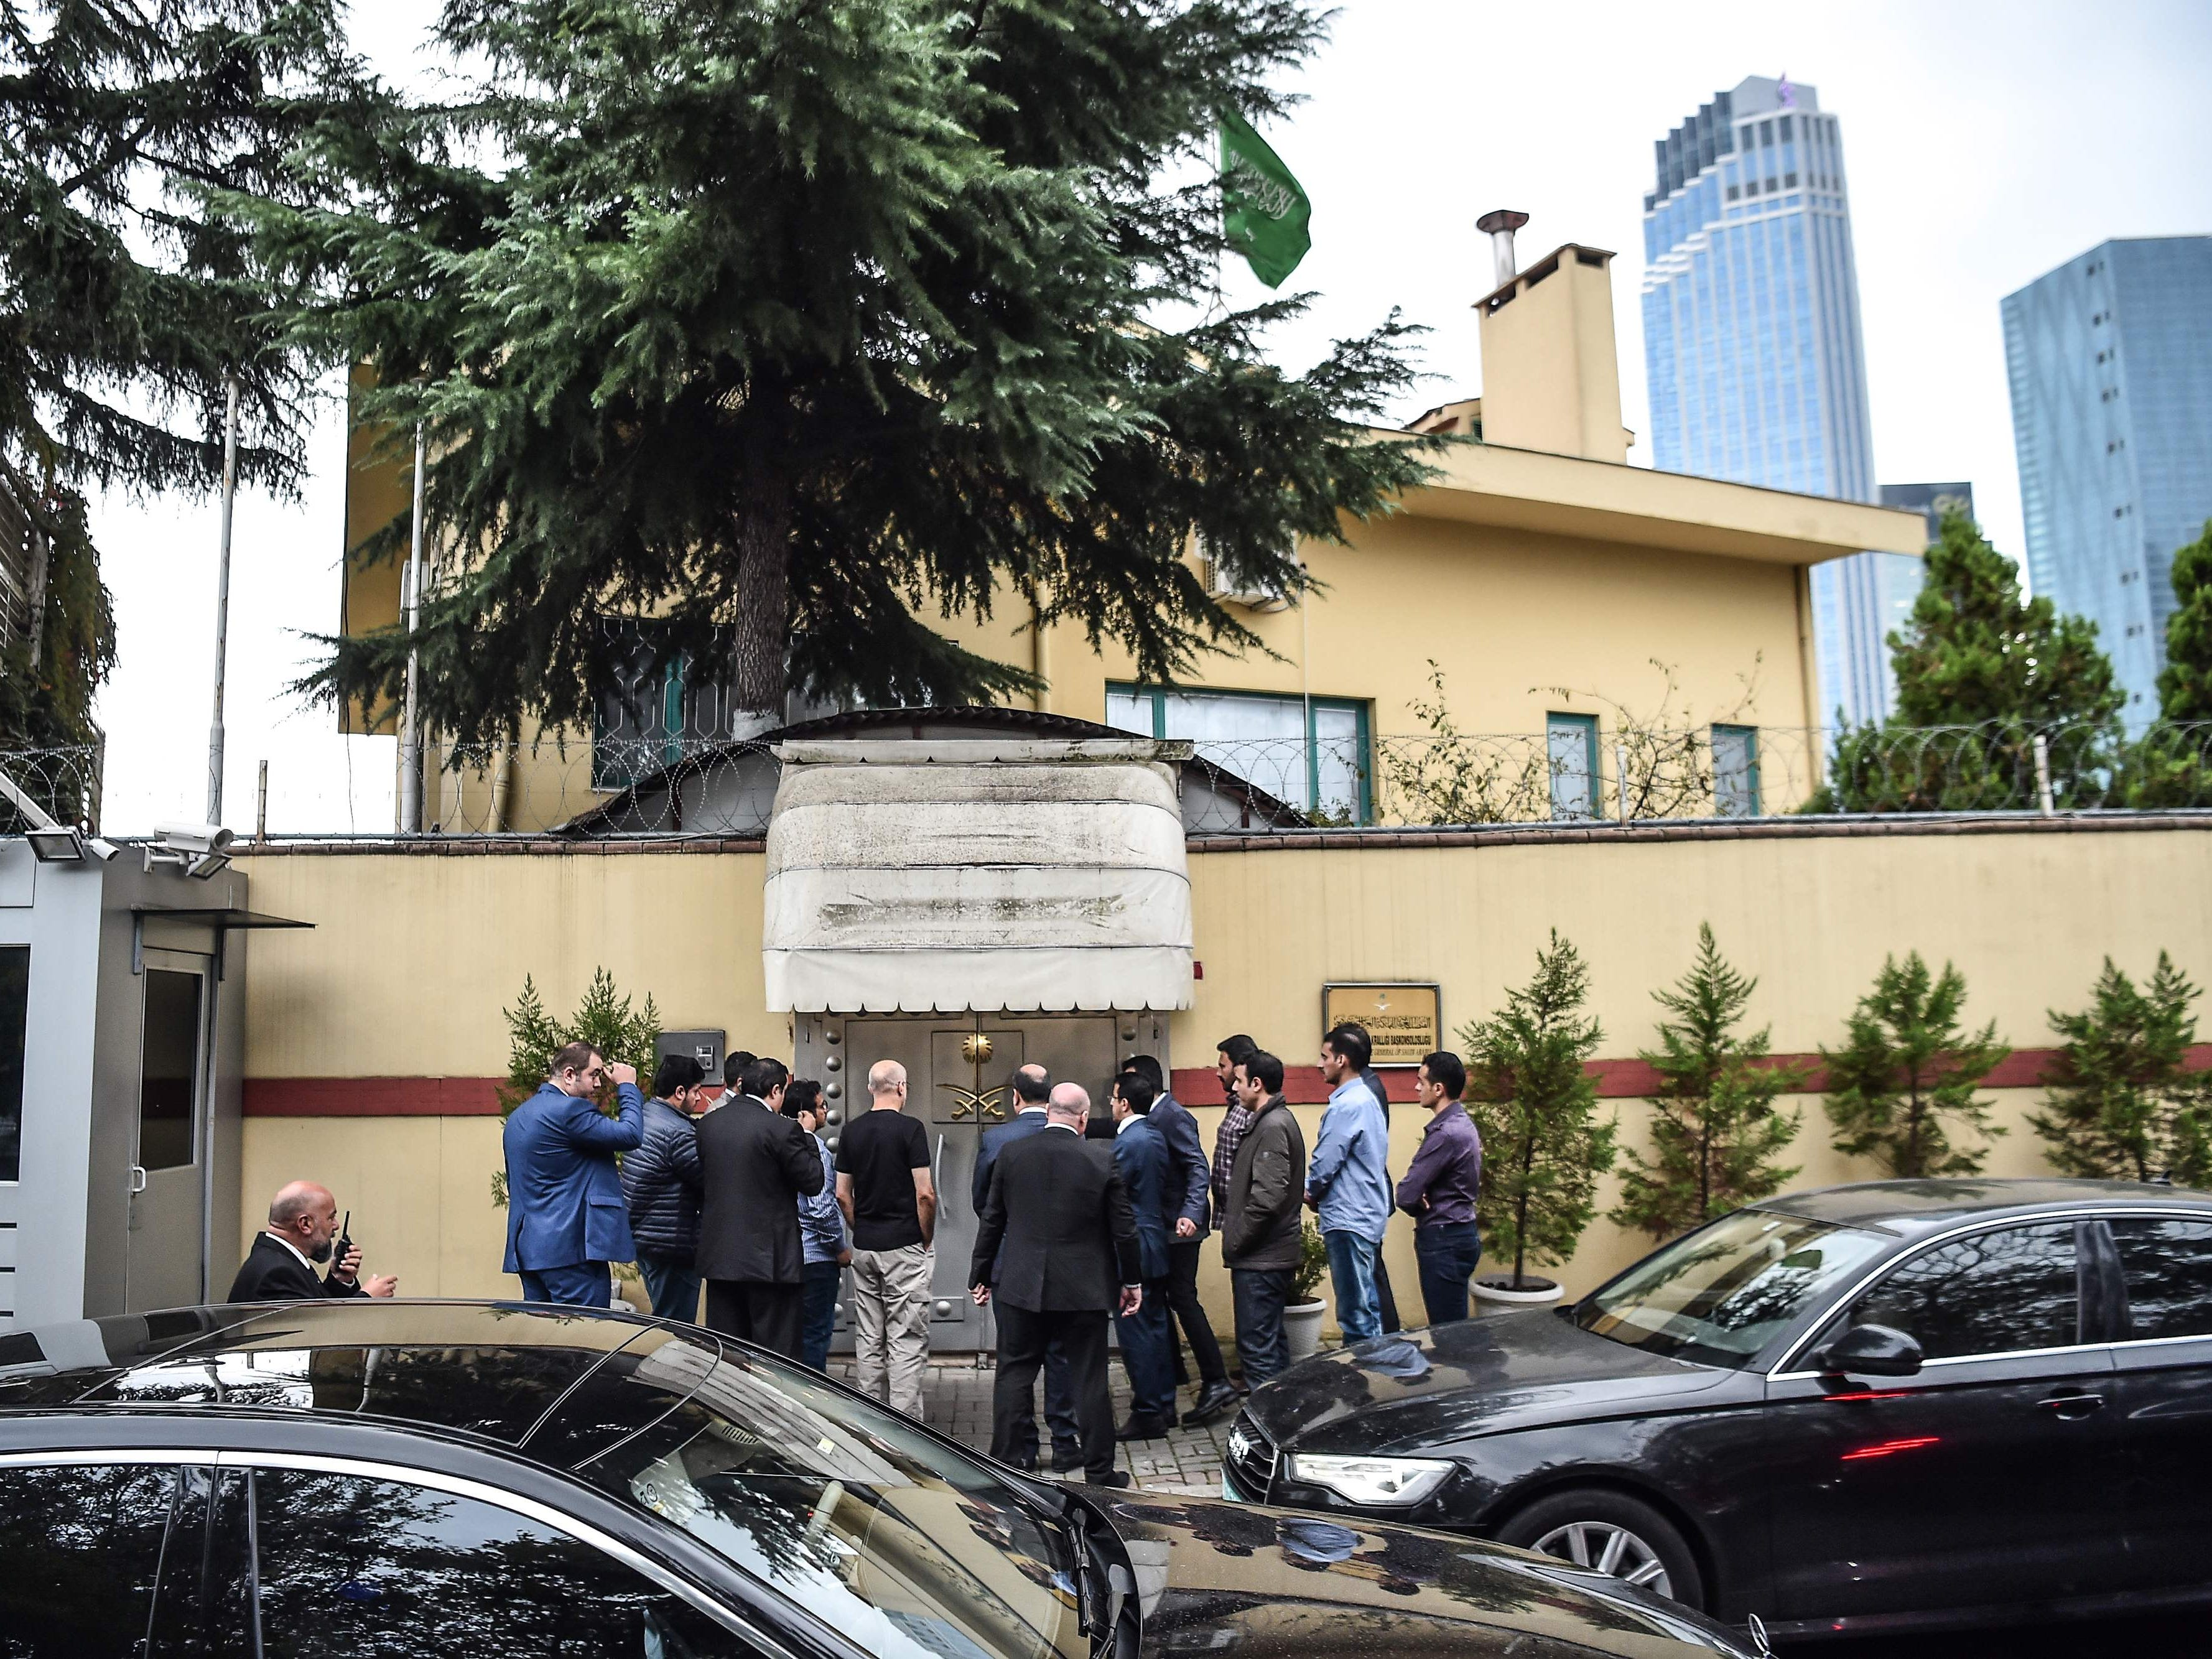 A Saudi investigation delegation enters the consulate before Turkish forensic police and investigation delegation arrive at the Saudi Arabian consulate in Istanbul, Oct. 15, 2018 in Istanbul.